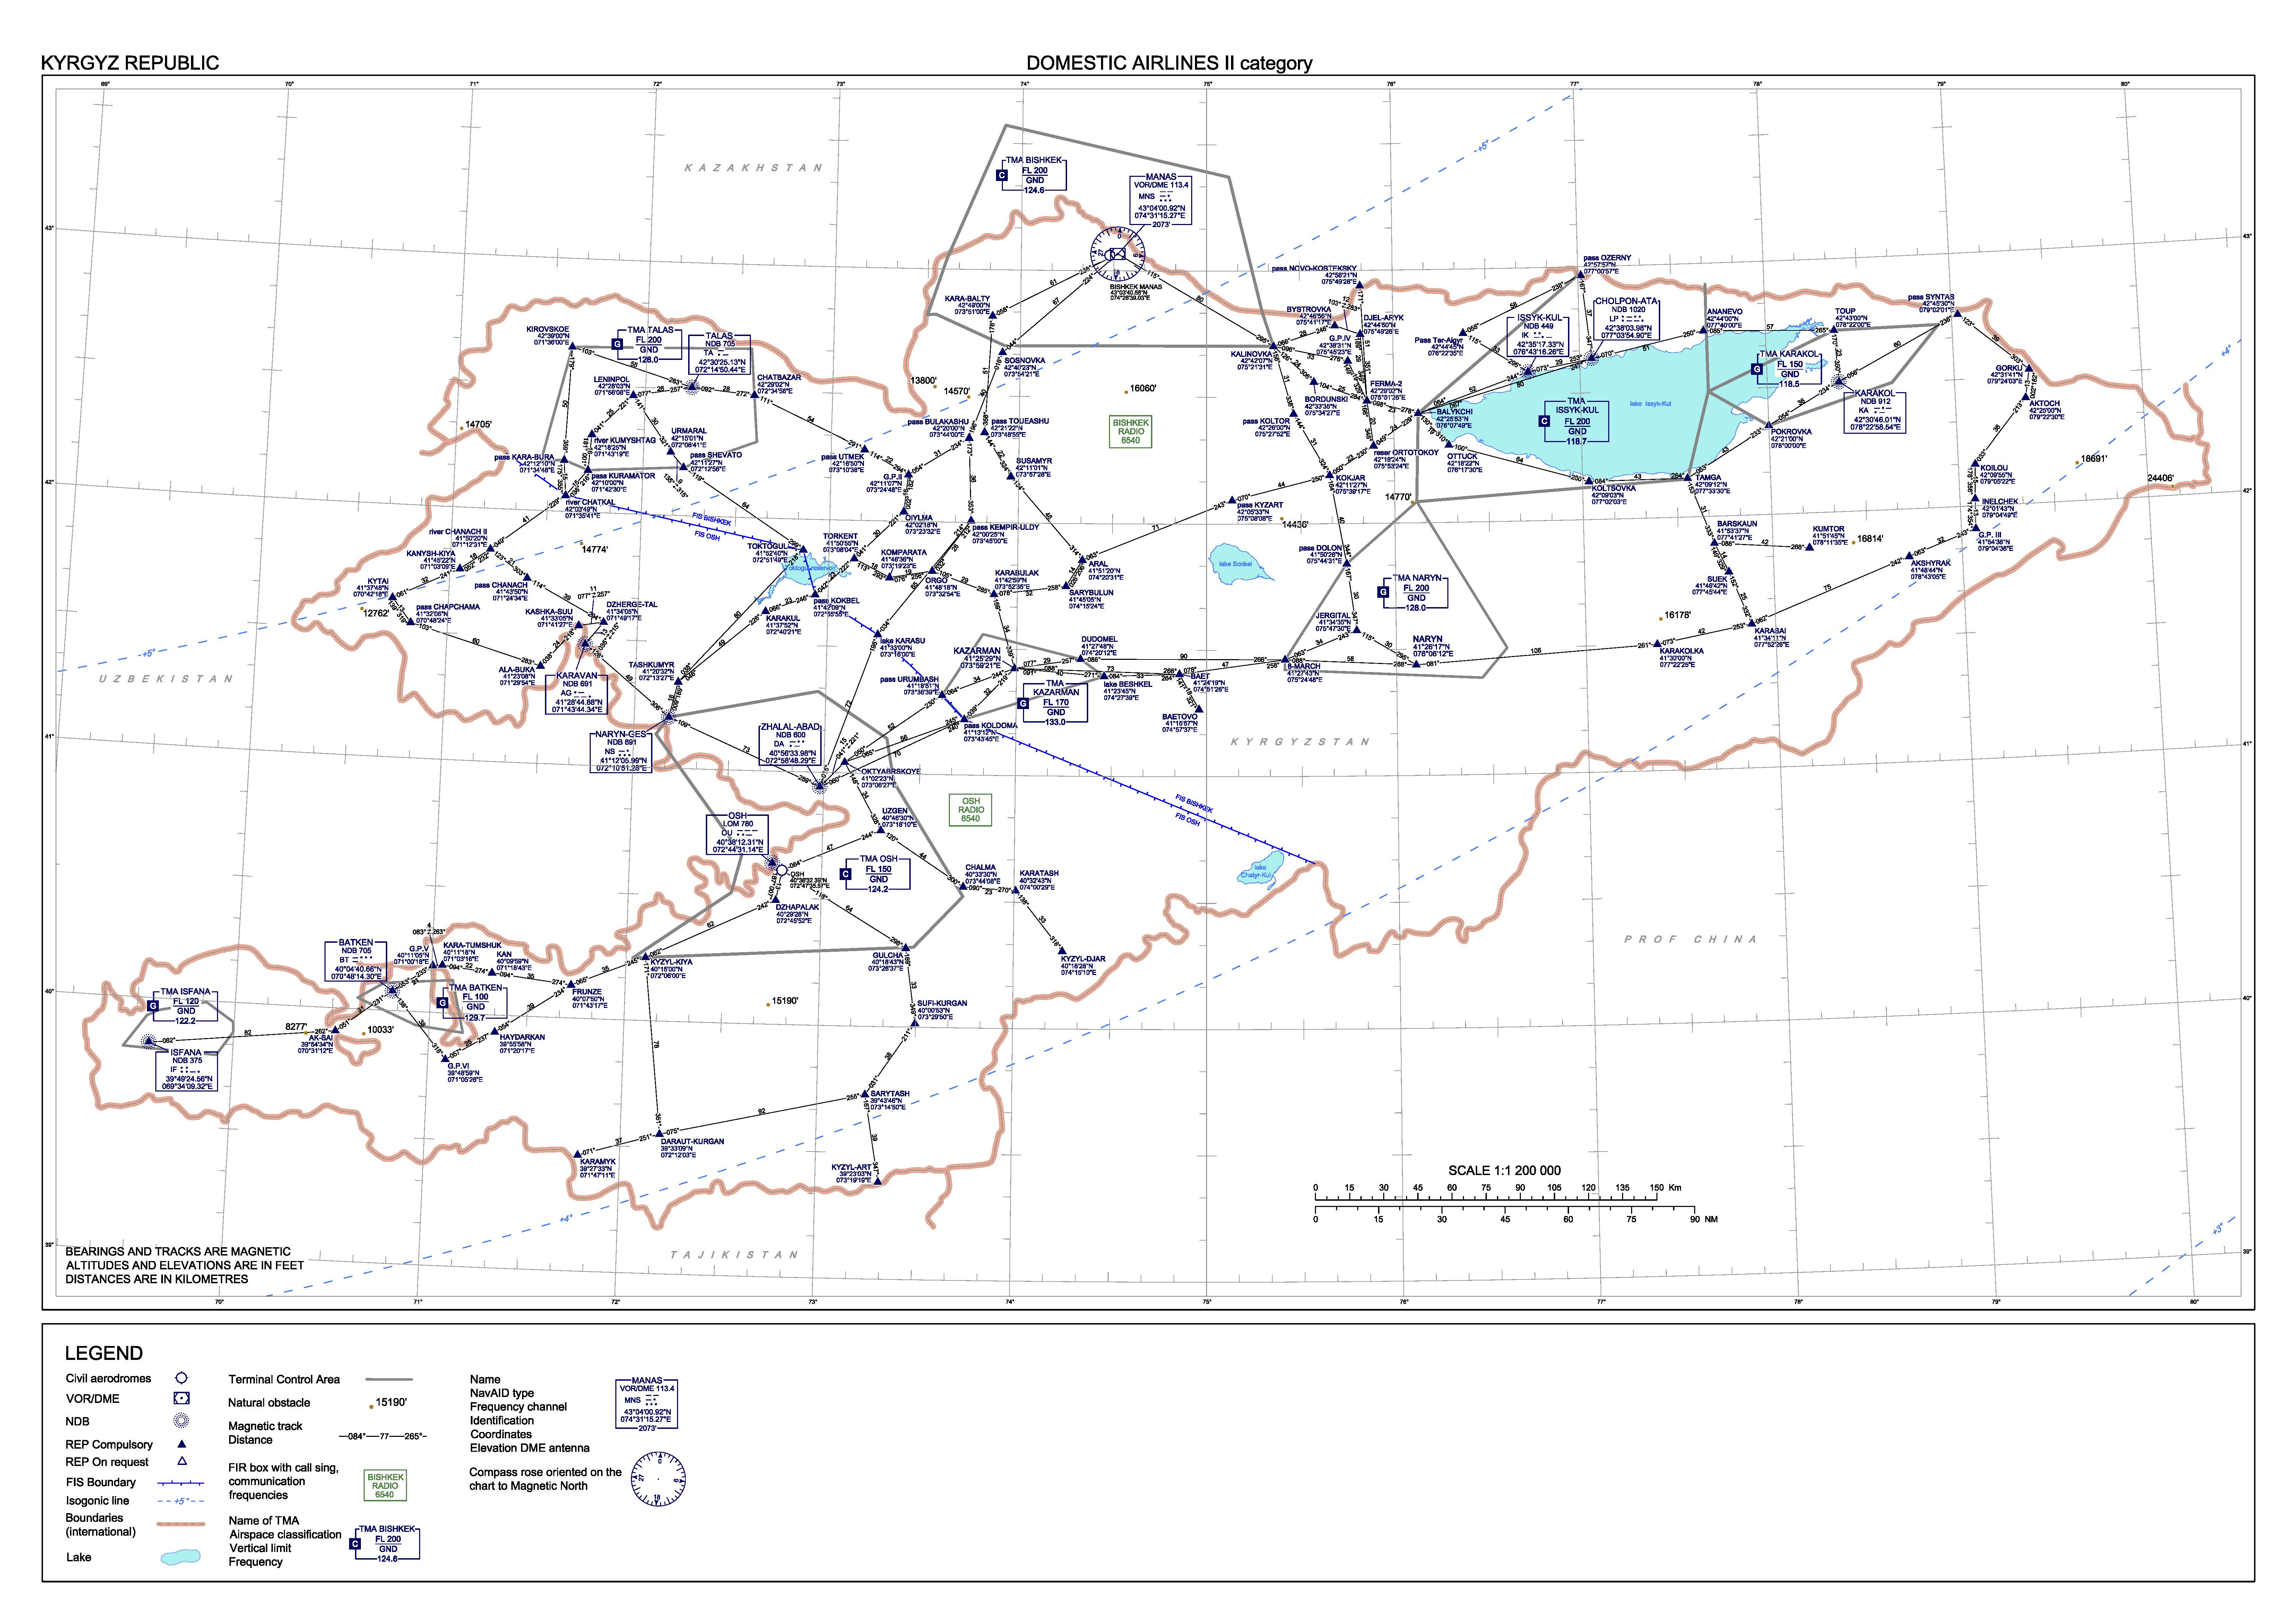 Geography of airways | Kyrgyzaeronavigatsia